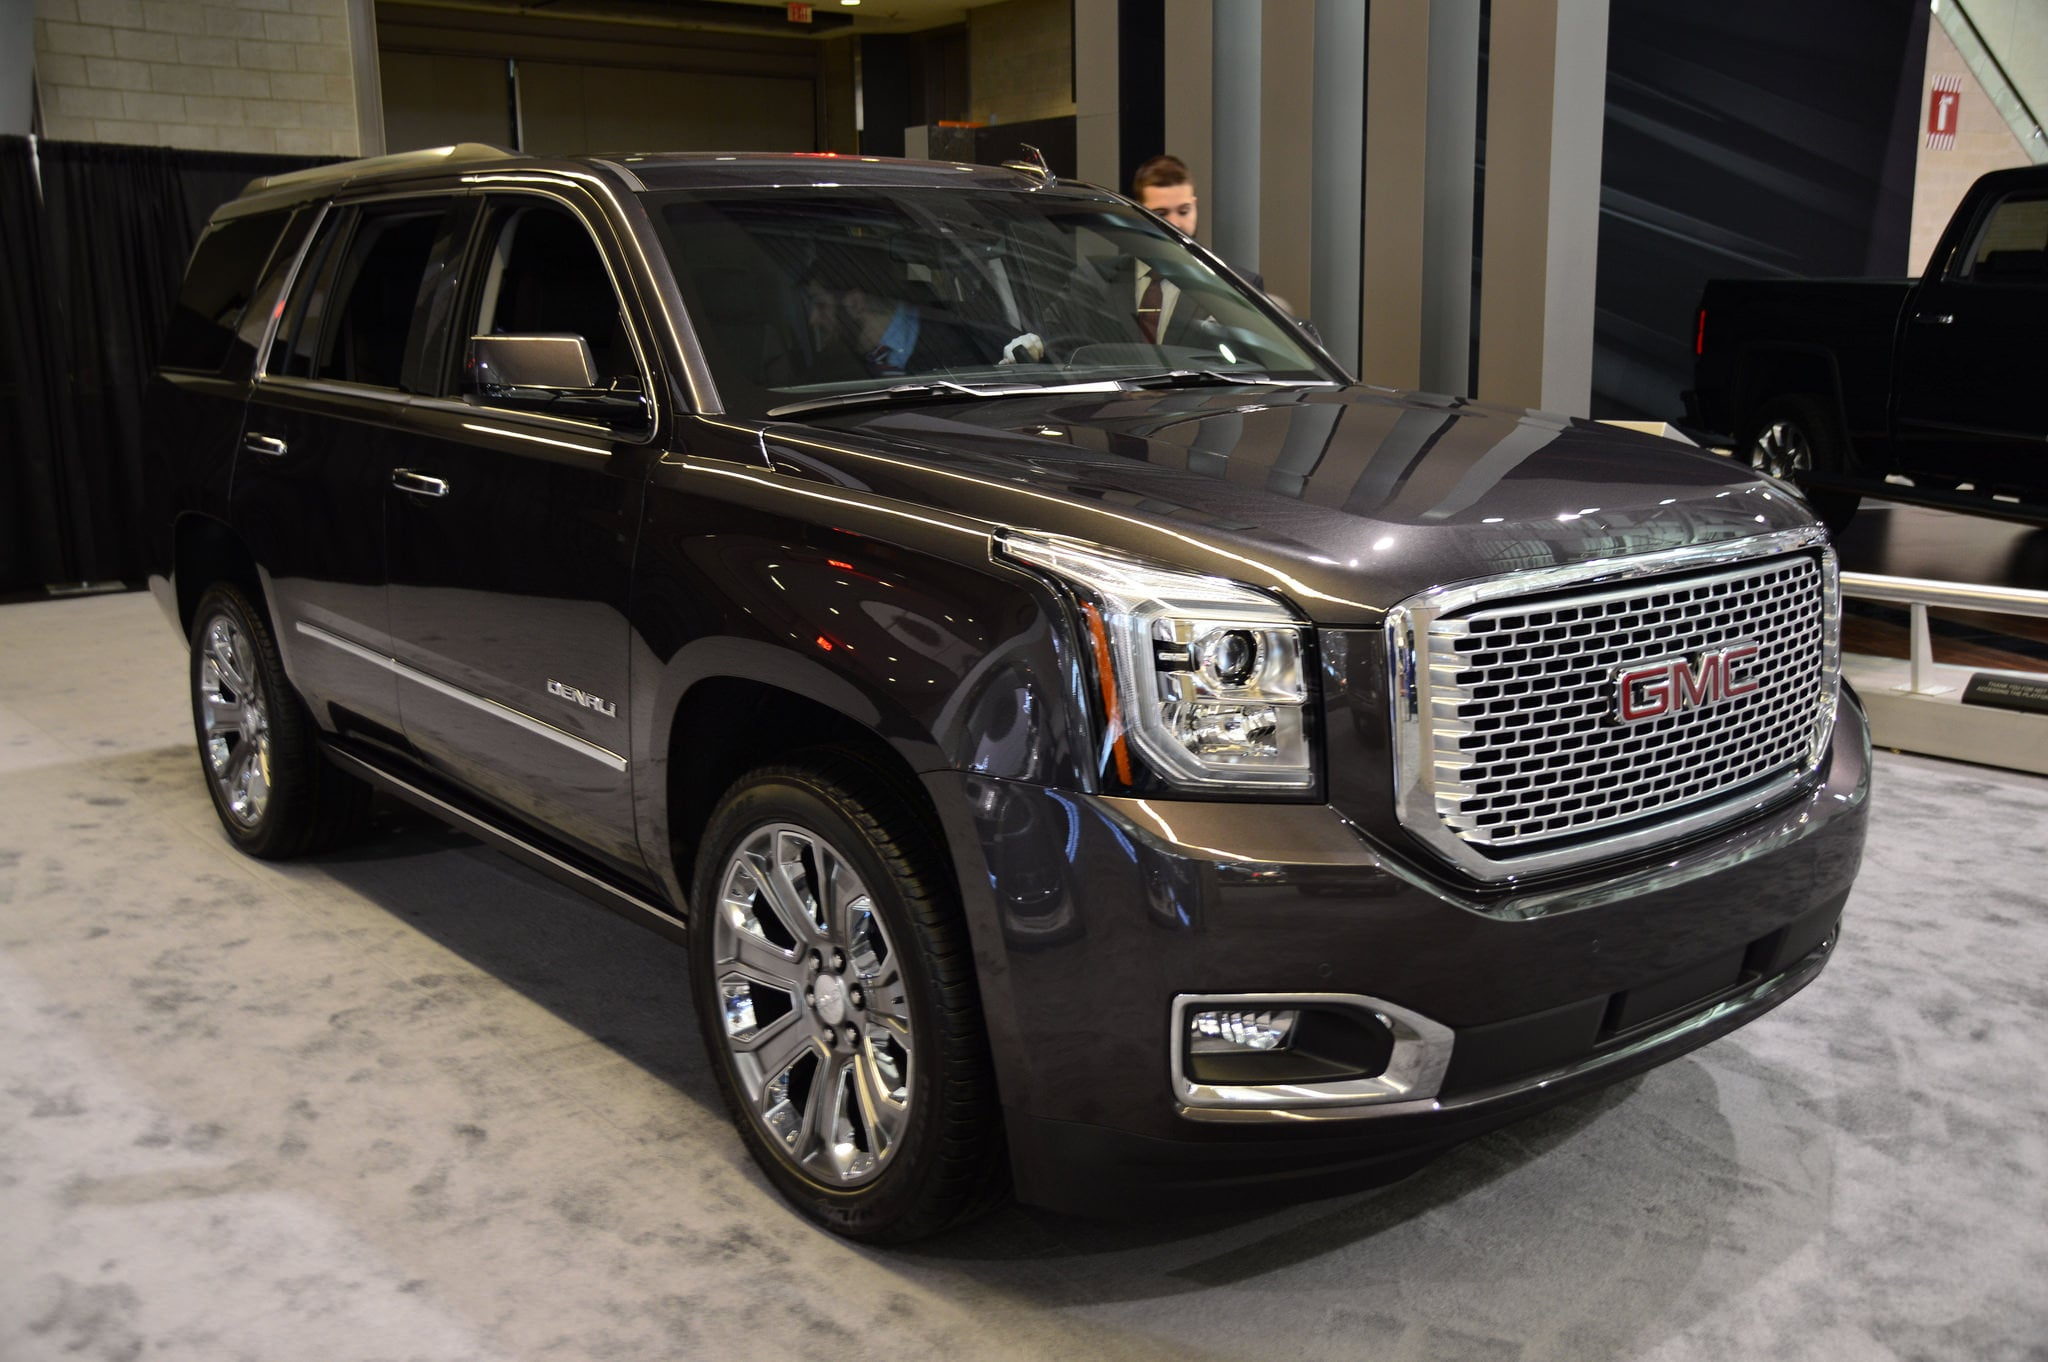 2016 gmc yukon denali wallpapers hd high resolution. Black Bedroom Furniture Sets. Home Design Ideas